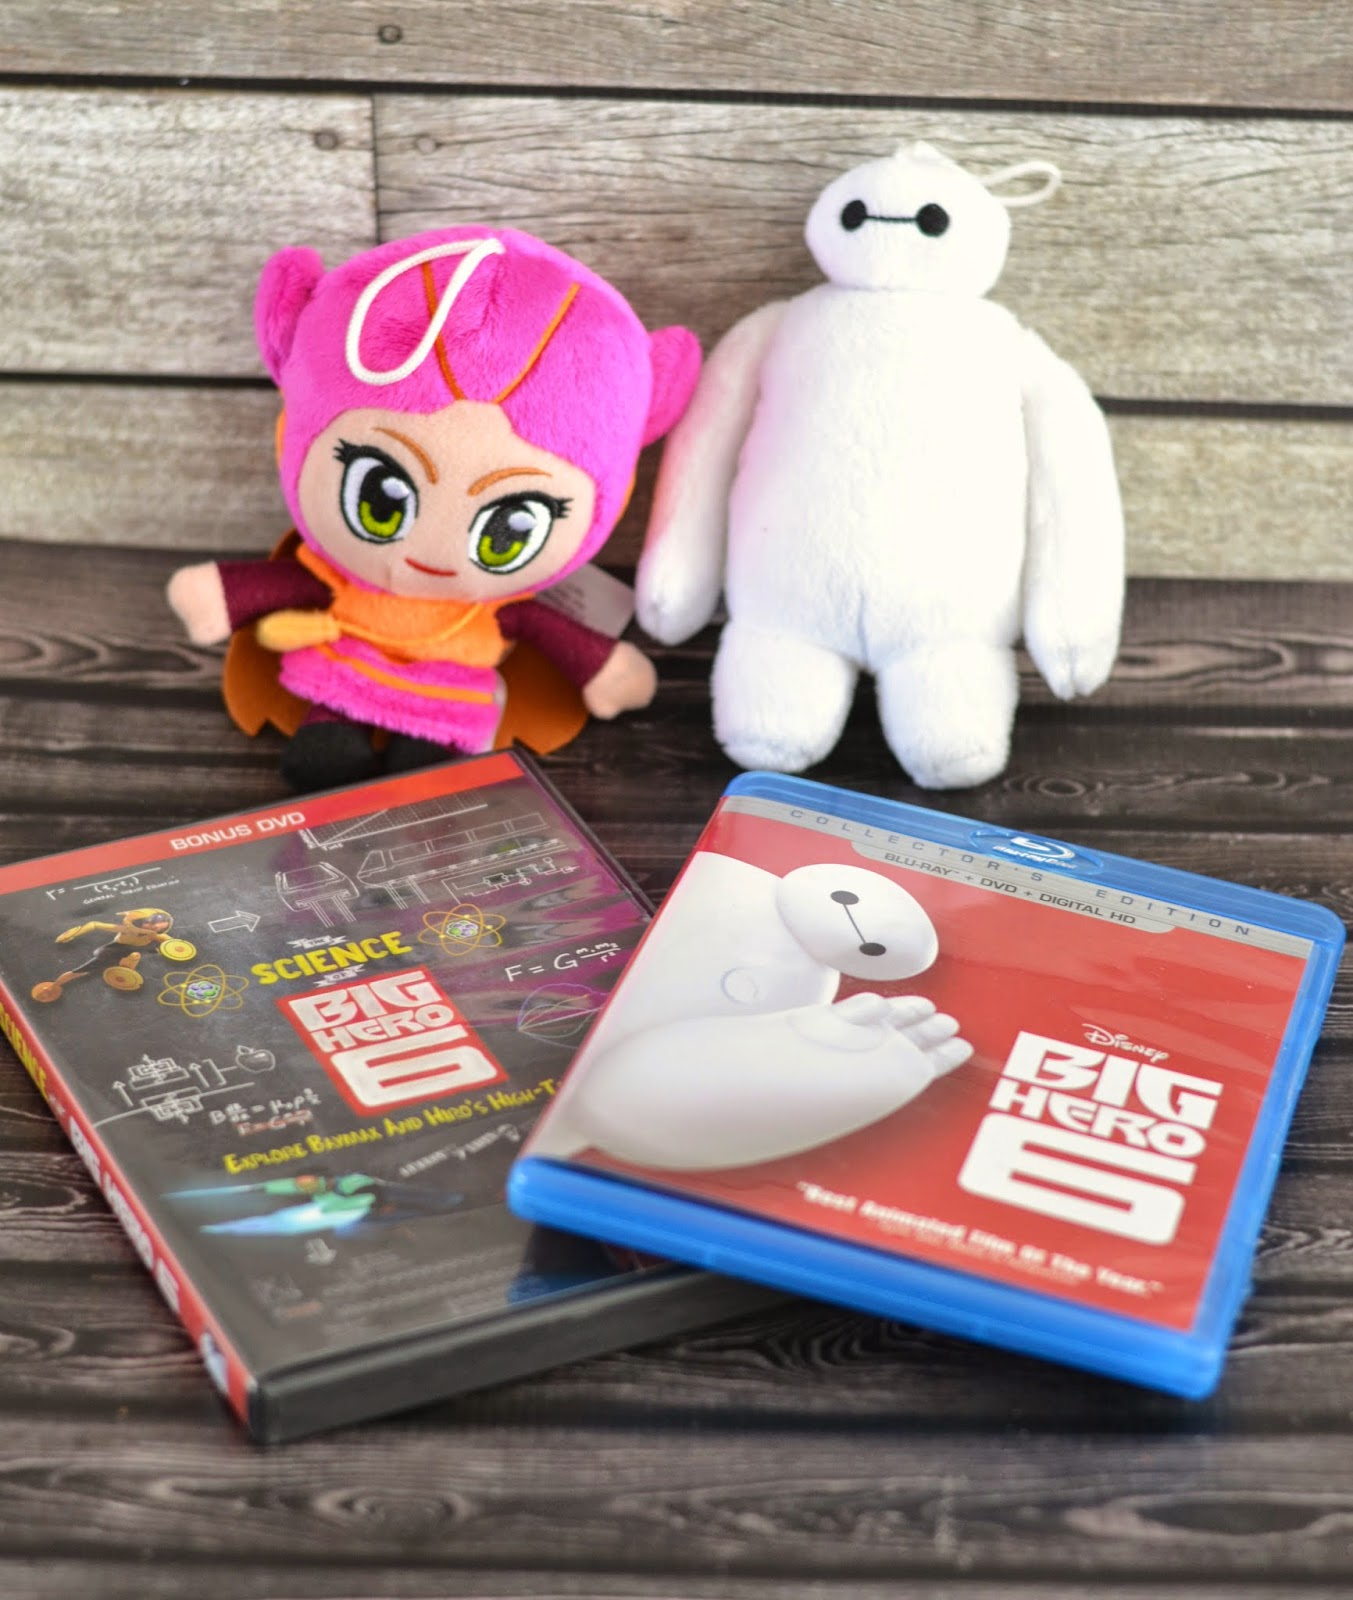 Big Hero 6 DVD release.  Big Hero 6 crafts.  Big Hero 6 birthday party ideas.  Big Hero 6 recipes.  Baymax crafts for preschoolers.  Baymax desserts.  Baymax recipes.  Baymax inspired desserts.  Honey Lemon Smoothie.  Honey Lemon from Big Hero 6.  Big Hero 6 party ideas.